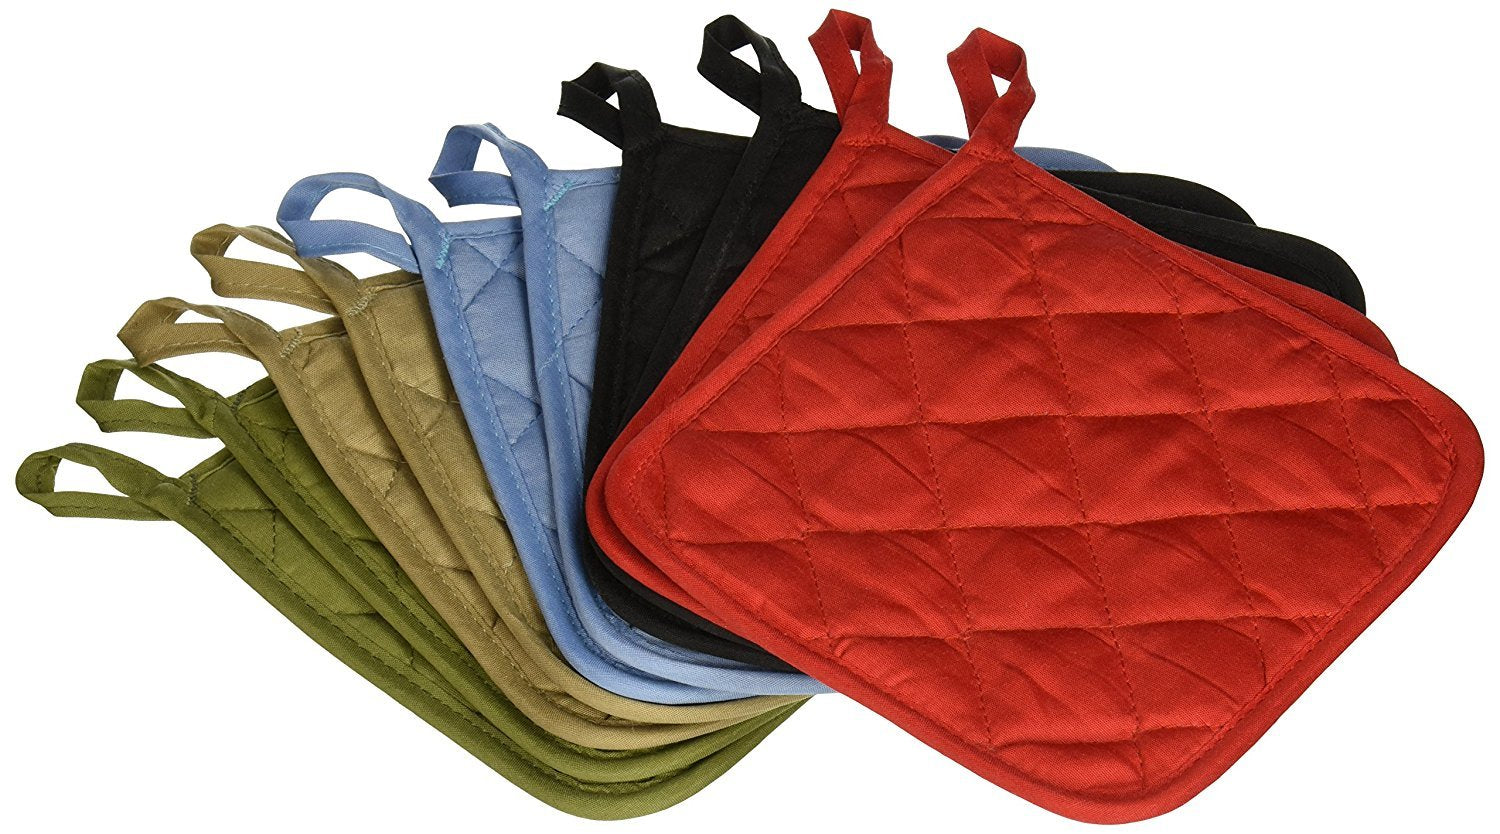 (Ten) 10 Pack Pot Holders 6.5 Square Solid Color Everday Quality Kitchen Cooking Chef Linens (Multi Color)